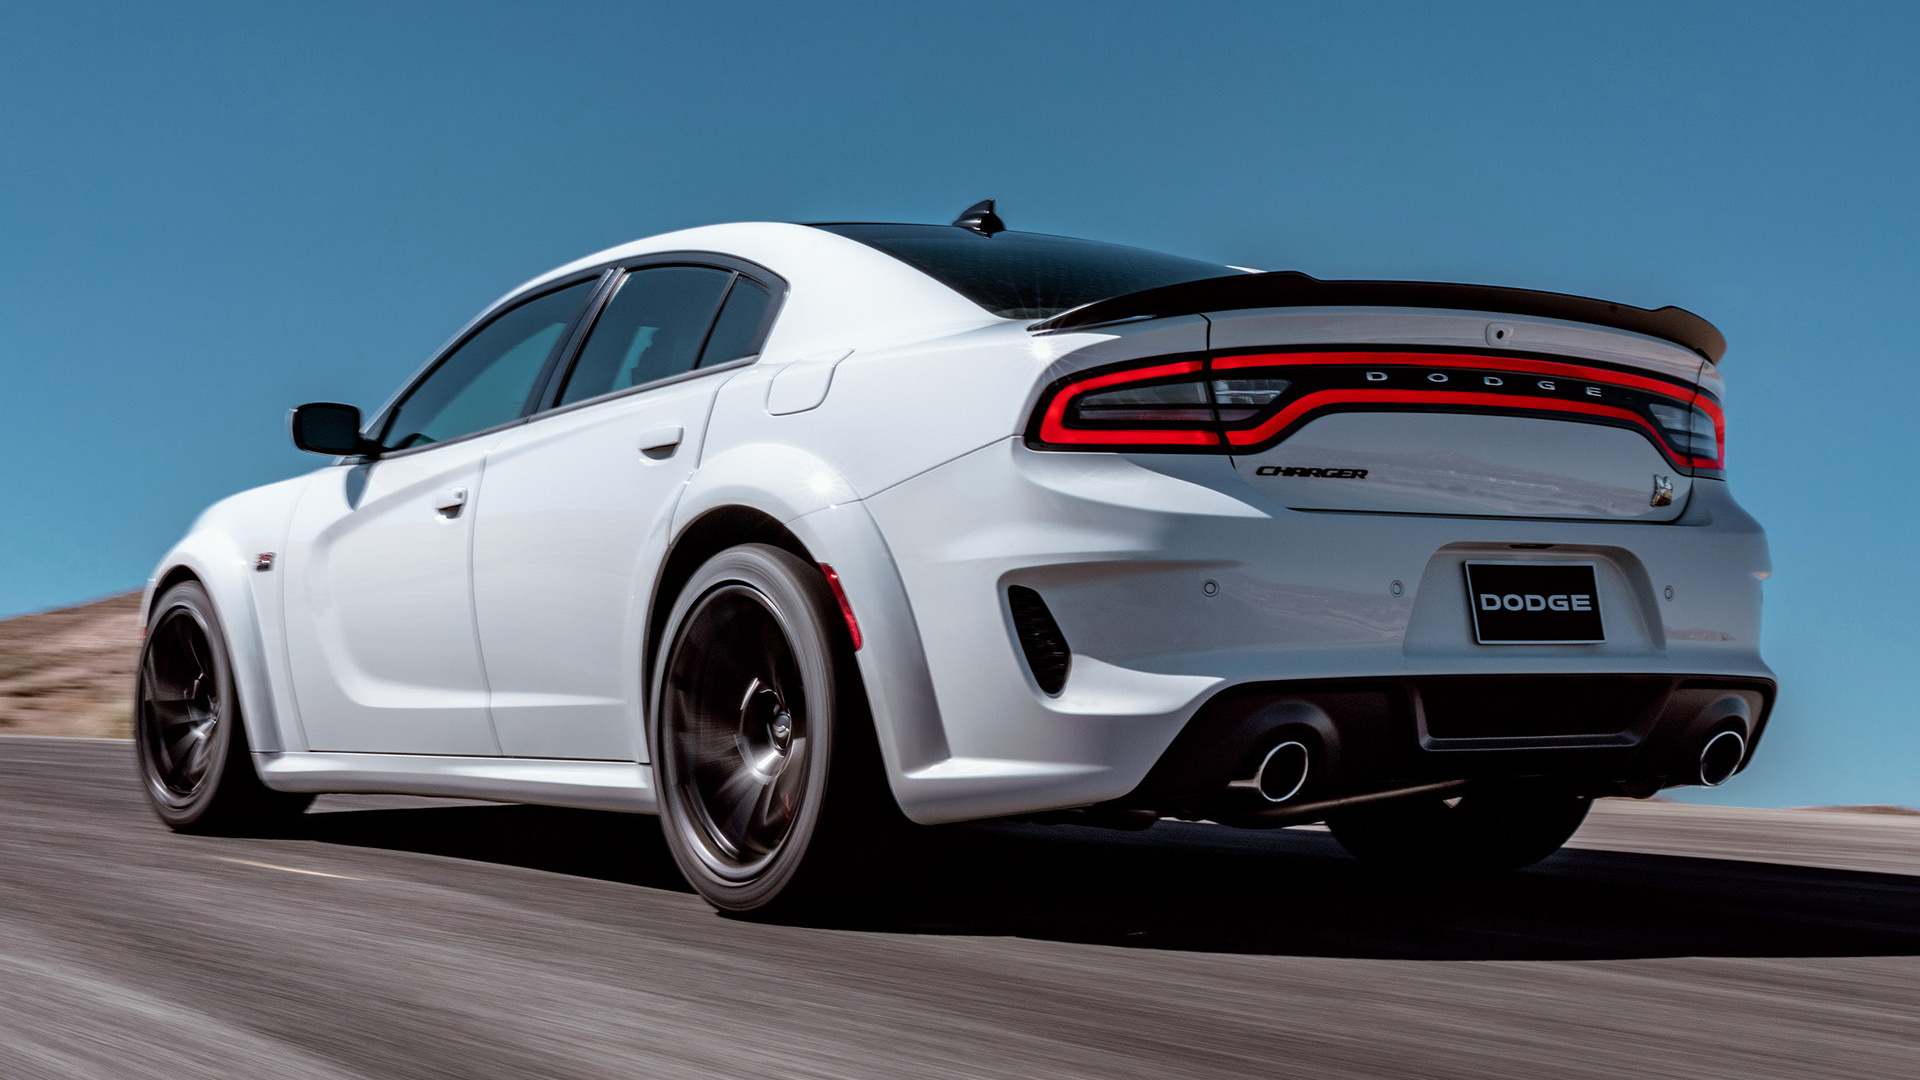 2020 Dodge Charger Scat Pack Widebody Wallpapers And Hd